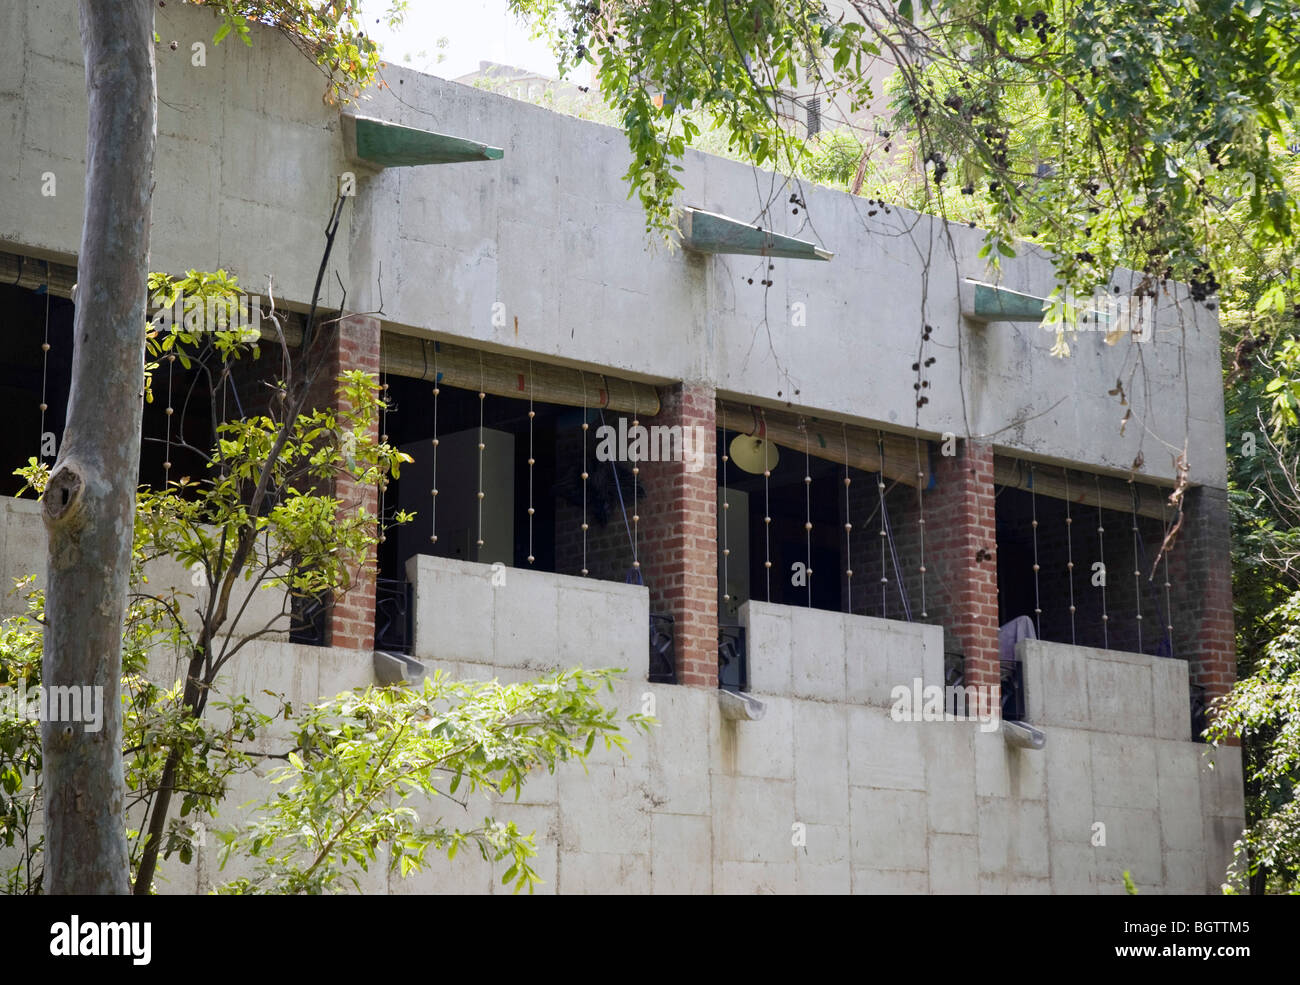 SARABHAI HOUSE, AHMEDABAD, INDIA, LE CORBUSIER - Stock Image